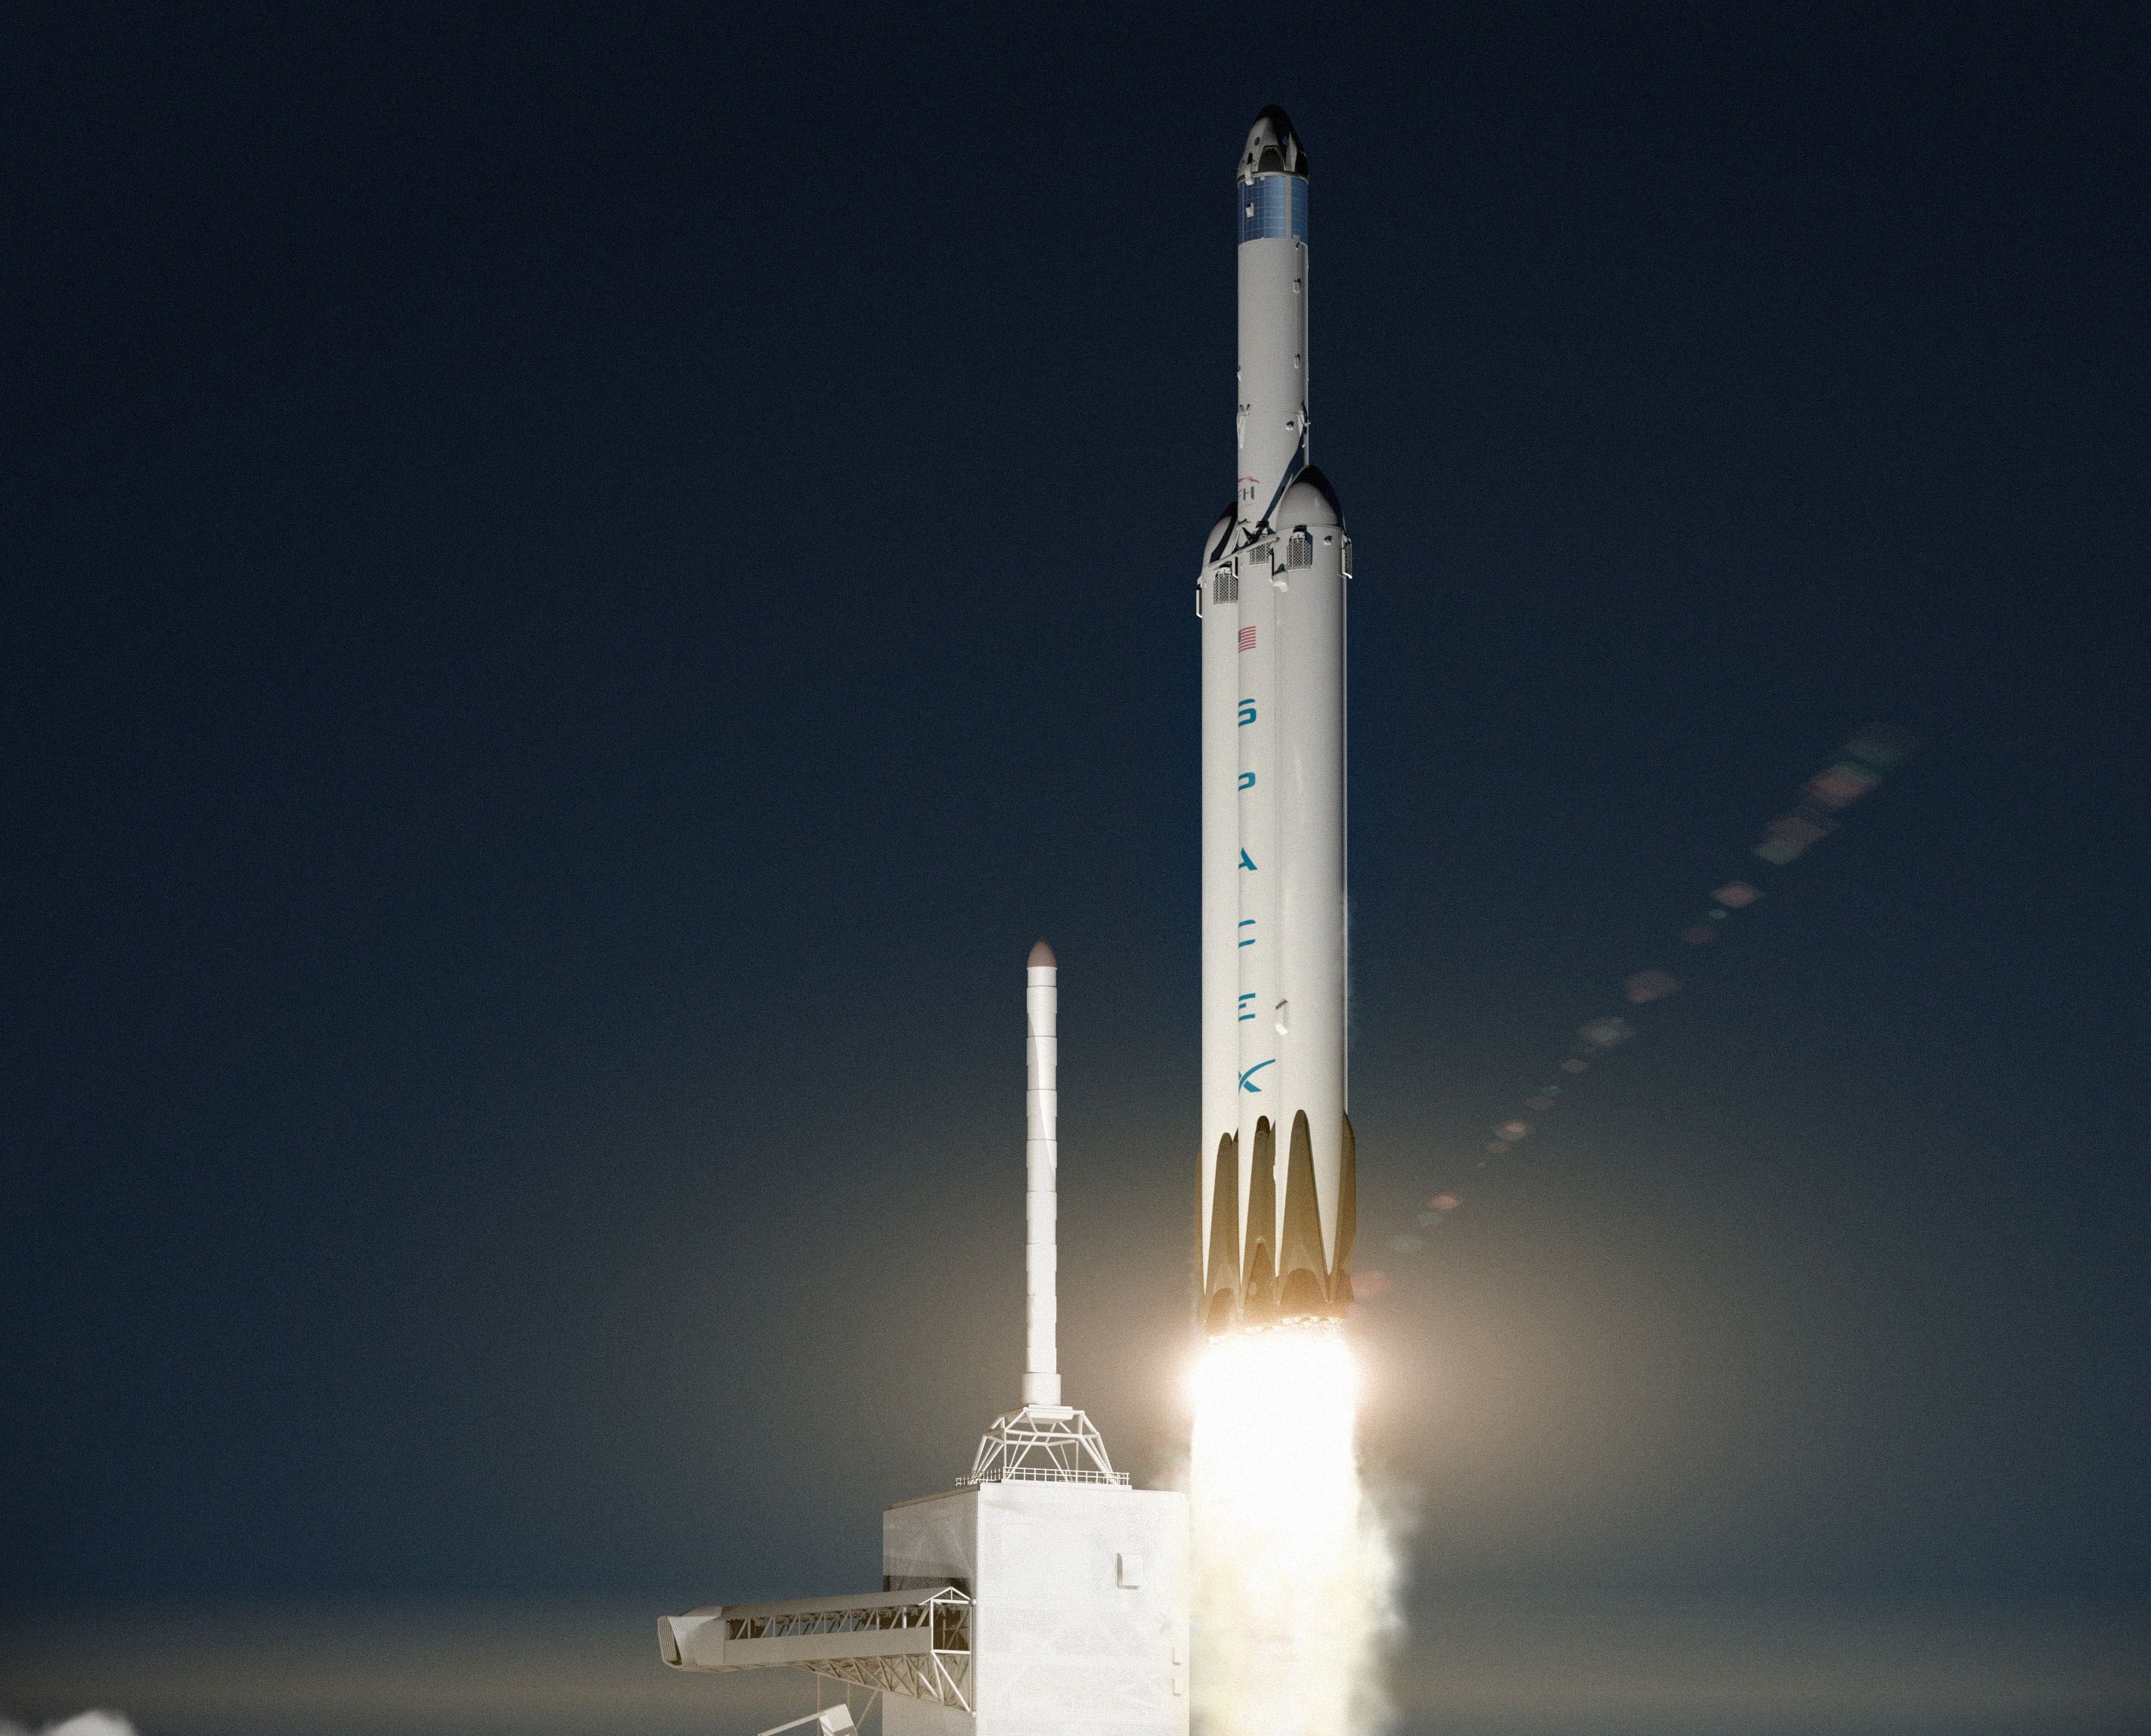 spacex falcon heavy launch - photo #12